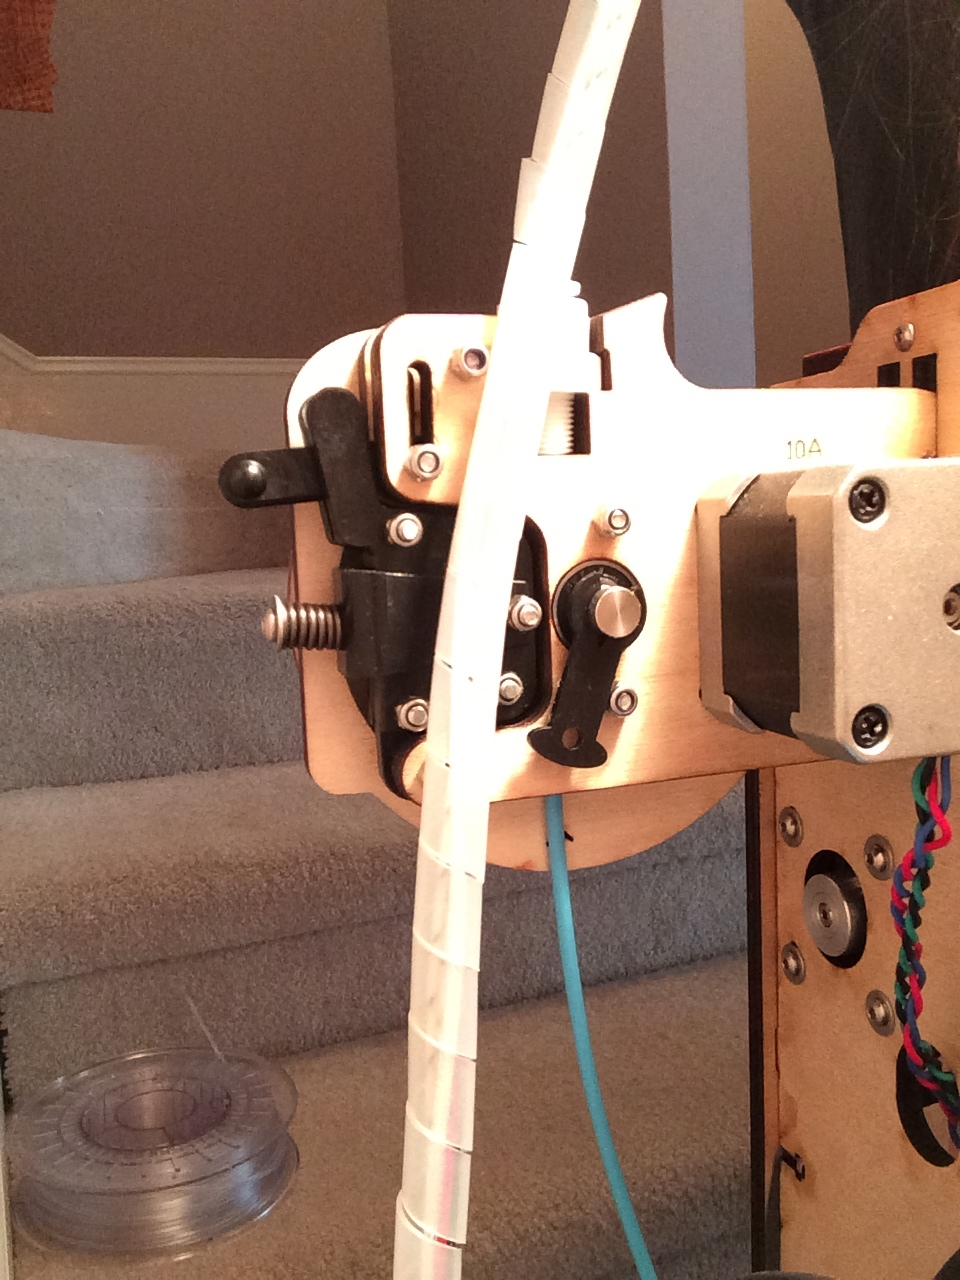 The material feeder mounted to the back of the printer with blue PLA plastic feeding through.